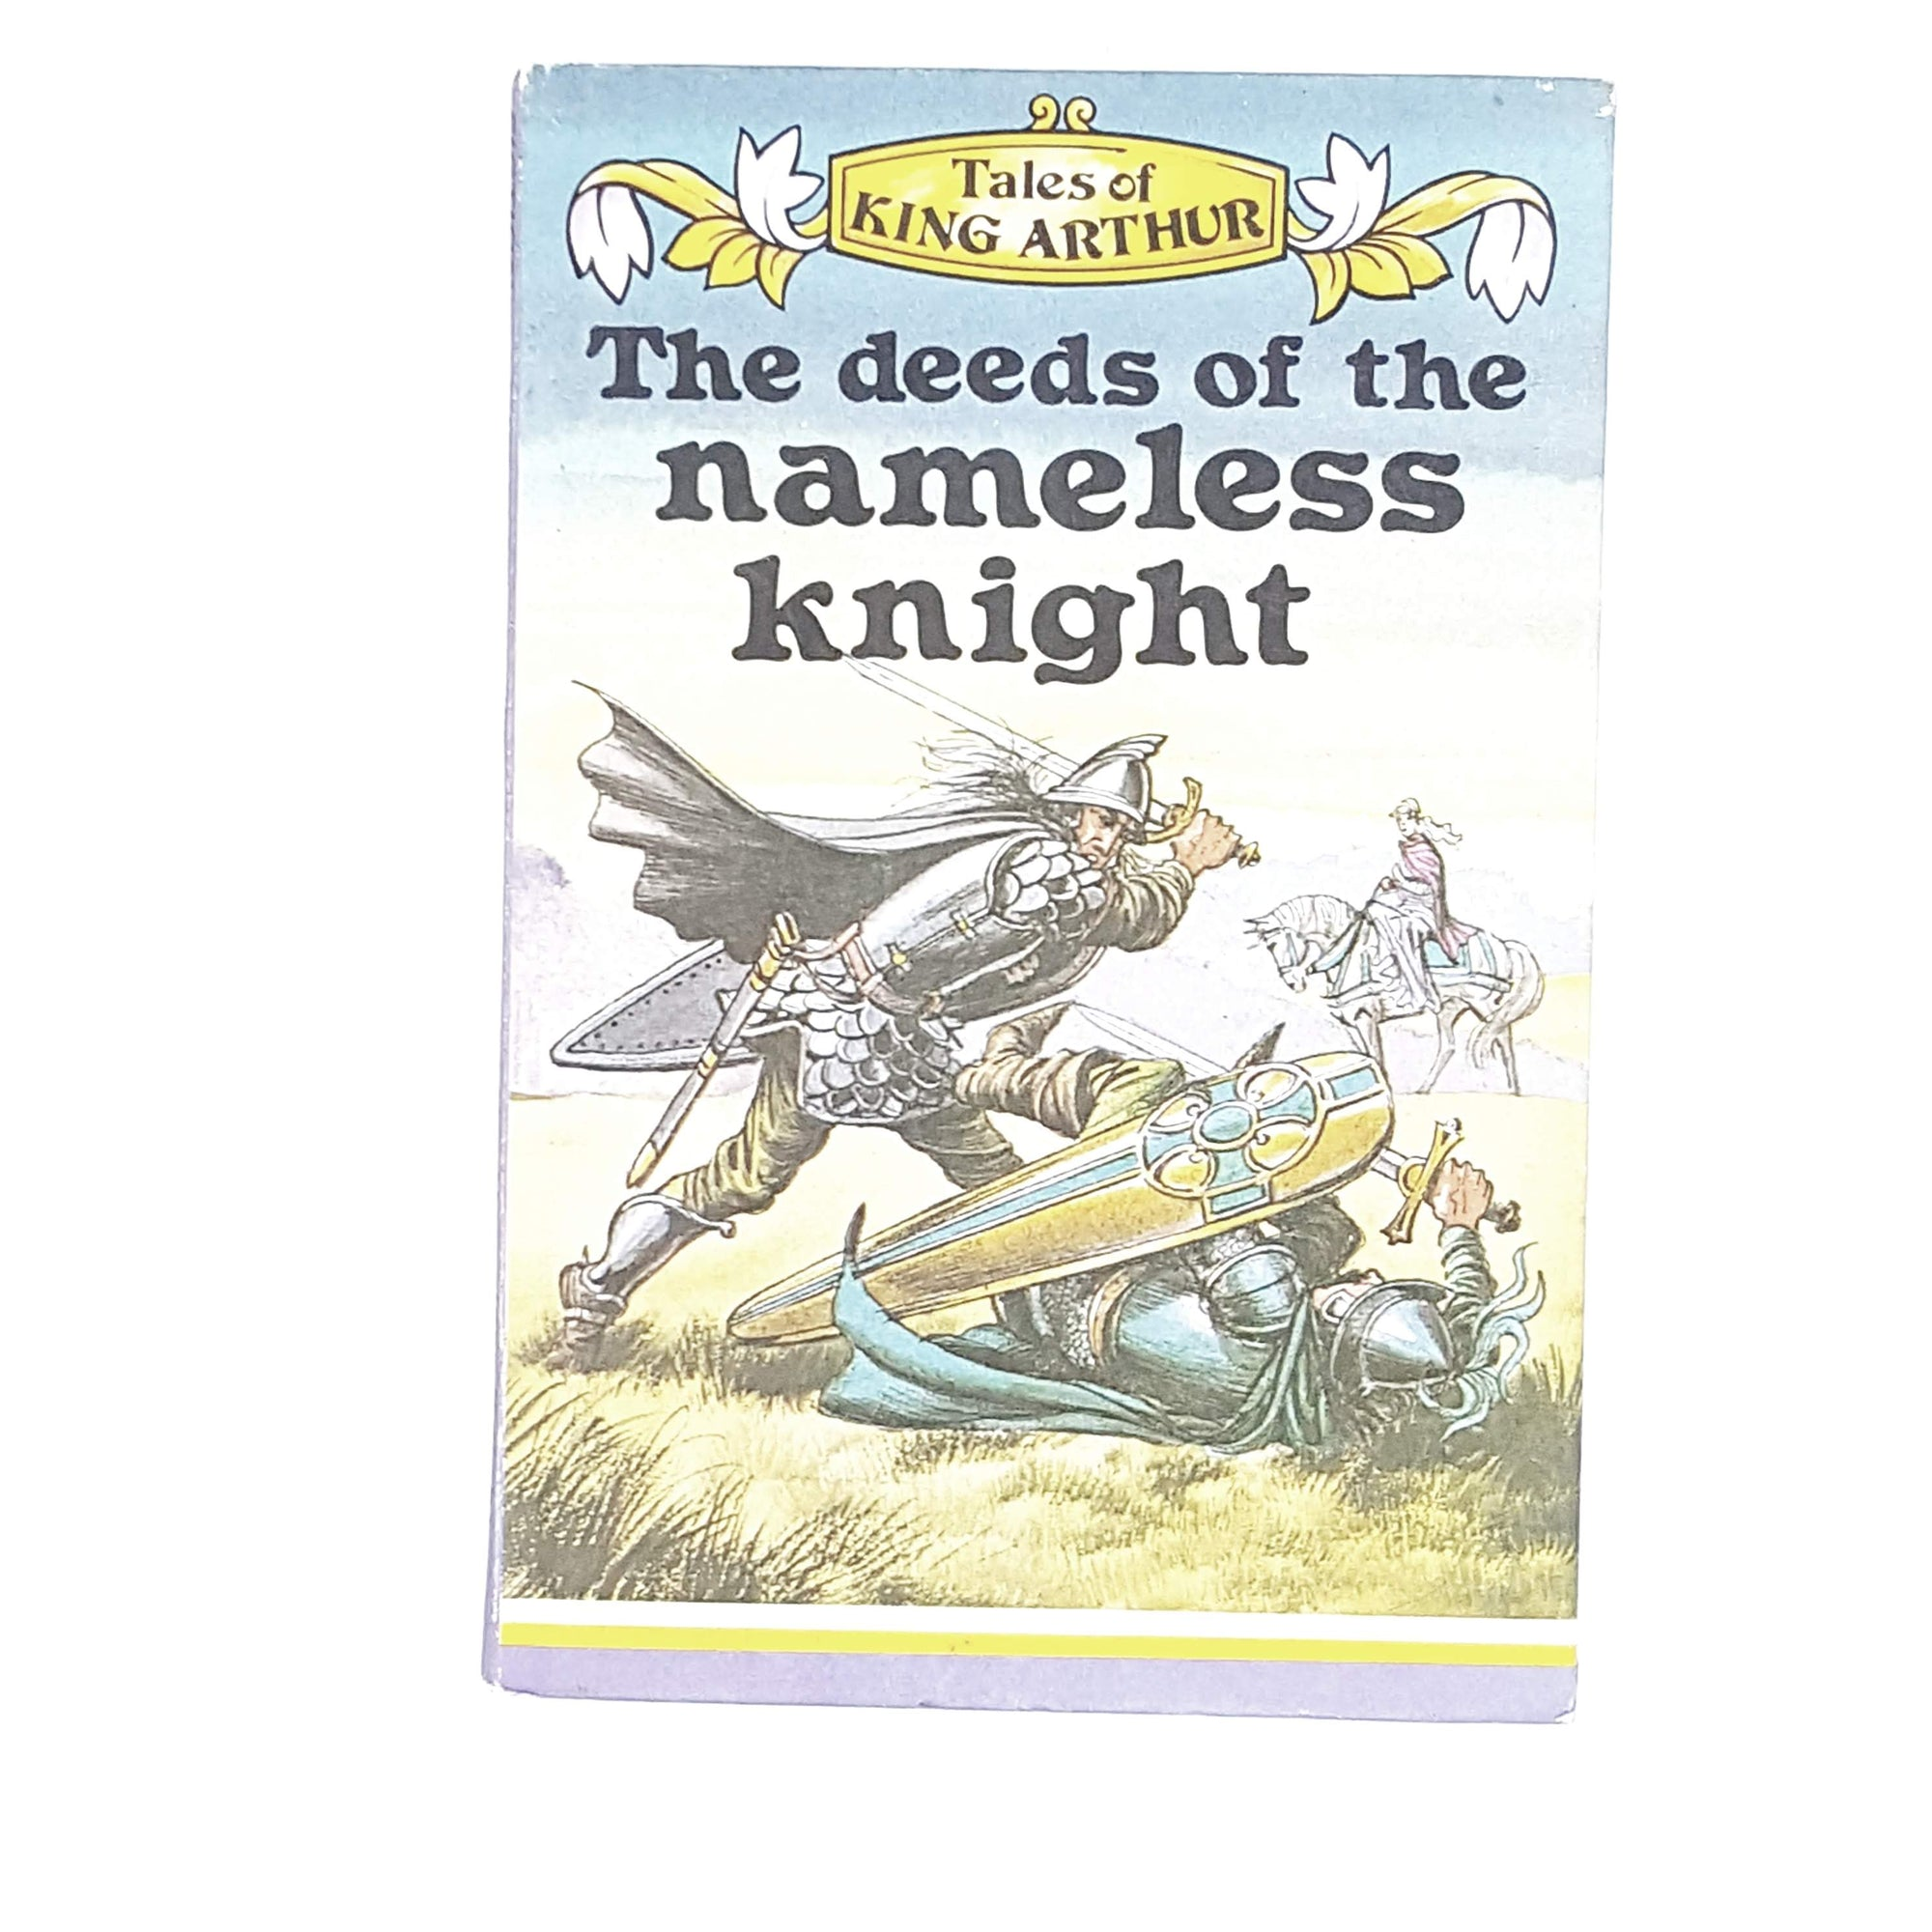 vintage-ladybird-the-deeds-of-the-nameless-knight-1977-kindergarten-books-country-house-library